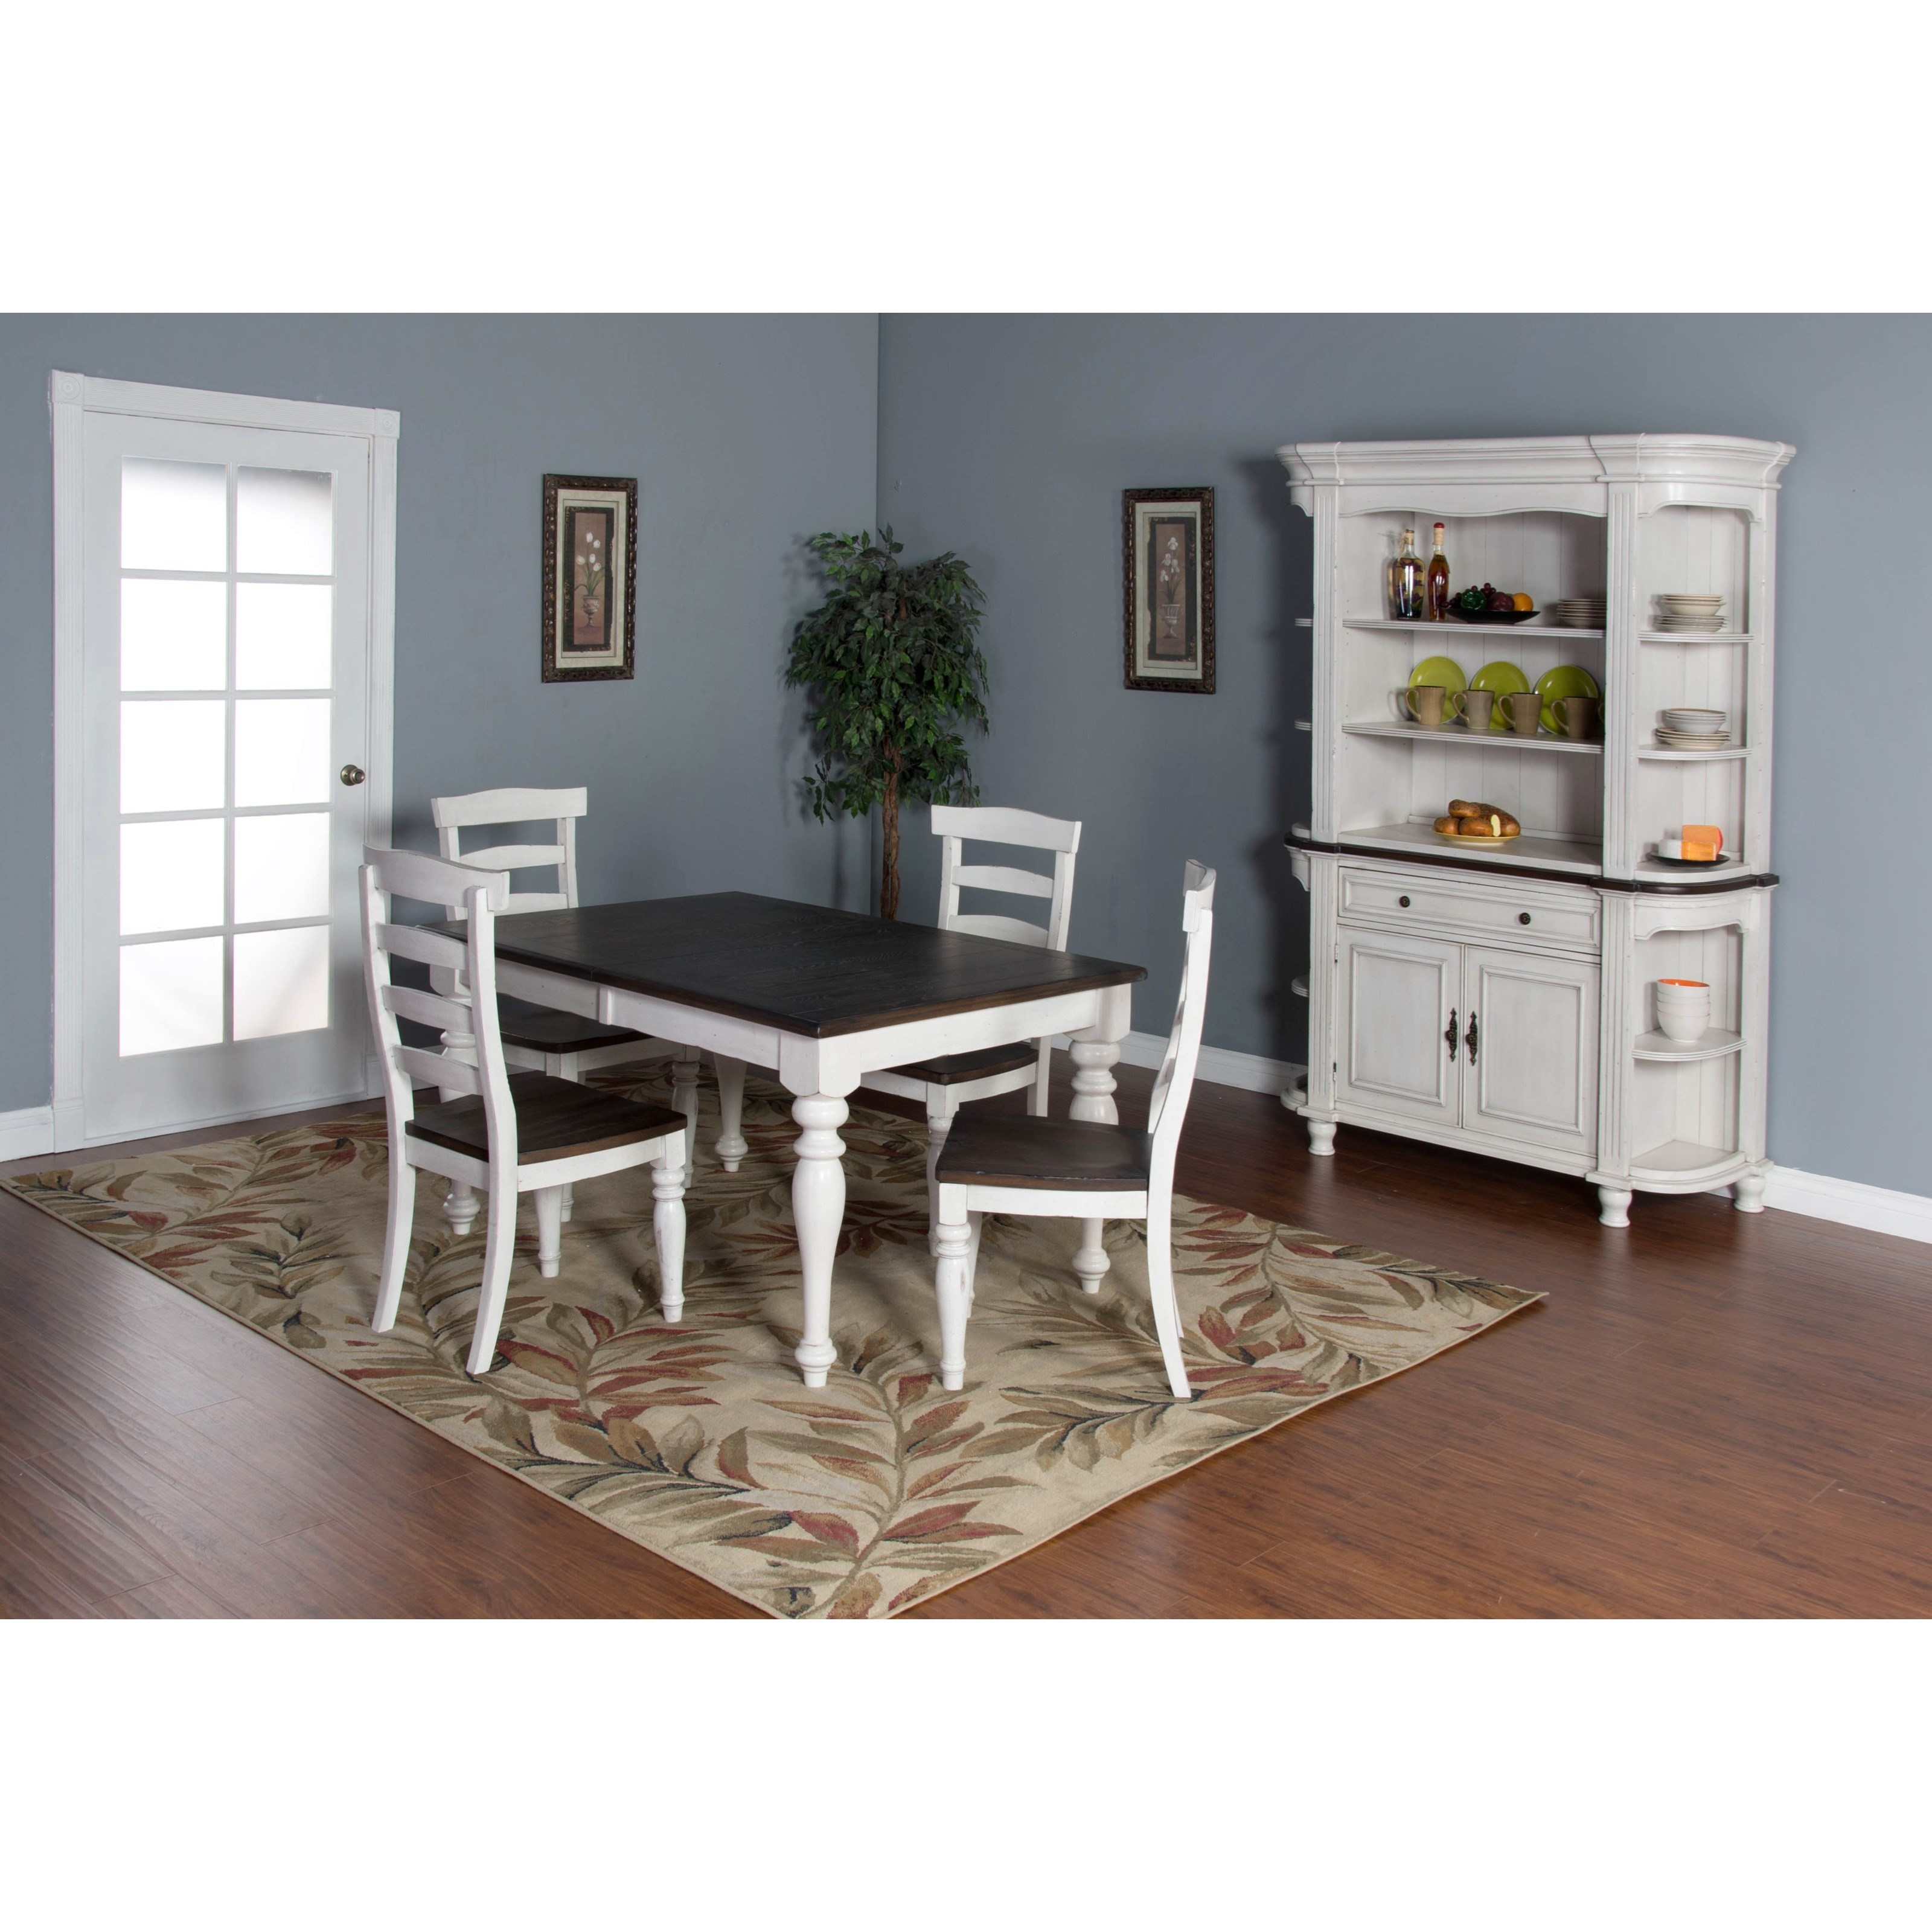 Mission Style Dining Room Tables: Sunny Designs Bourbon County Extension Dining Table With